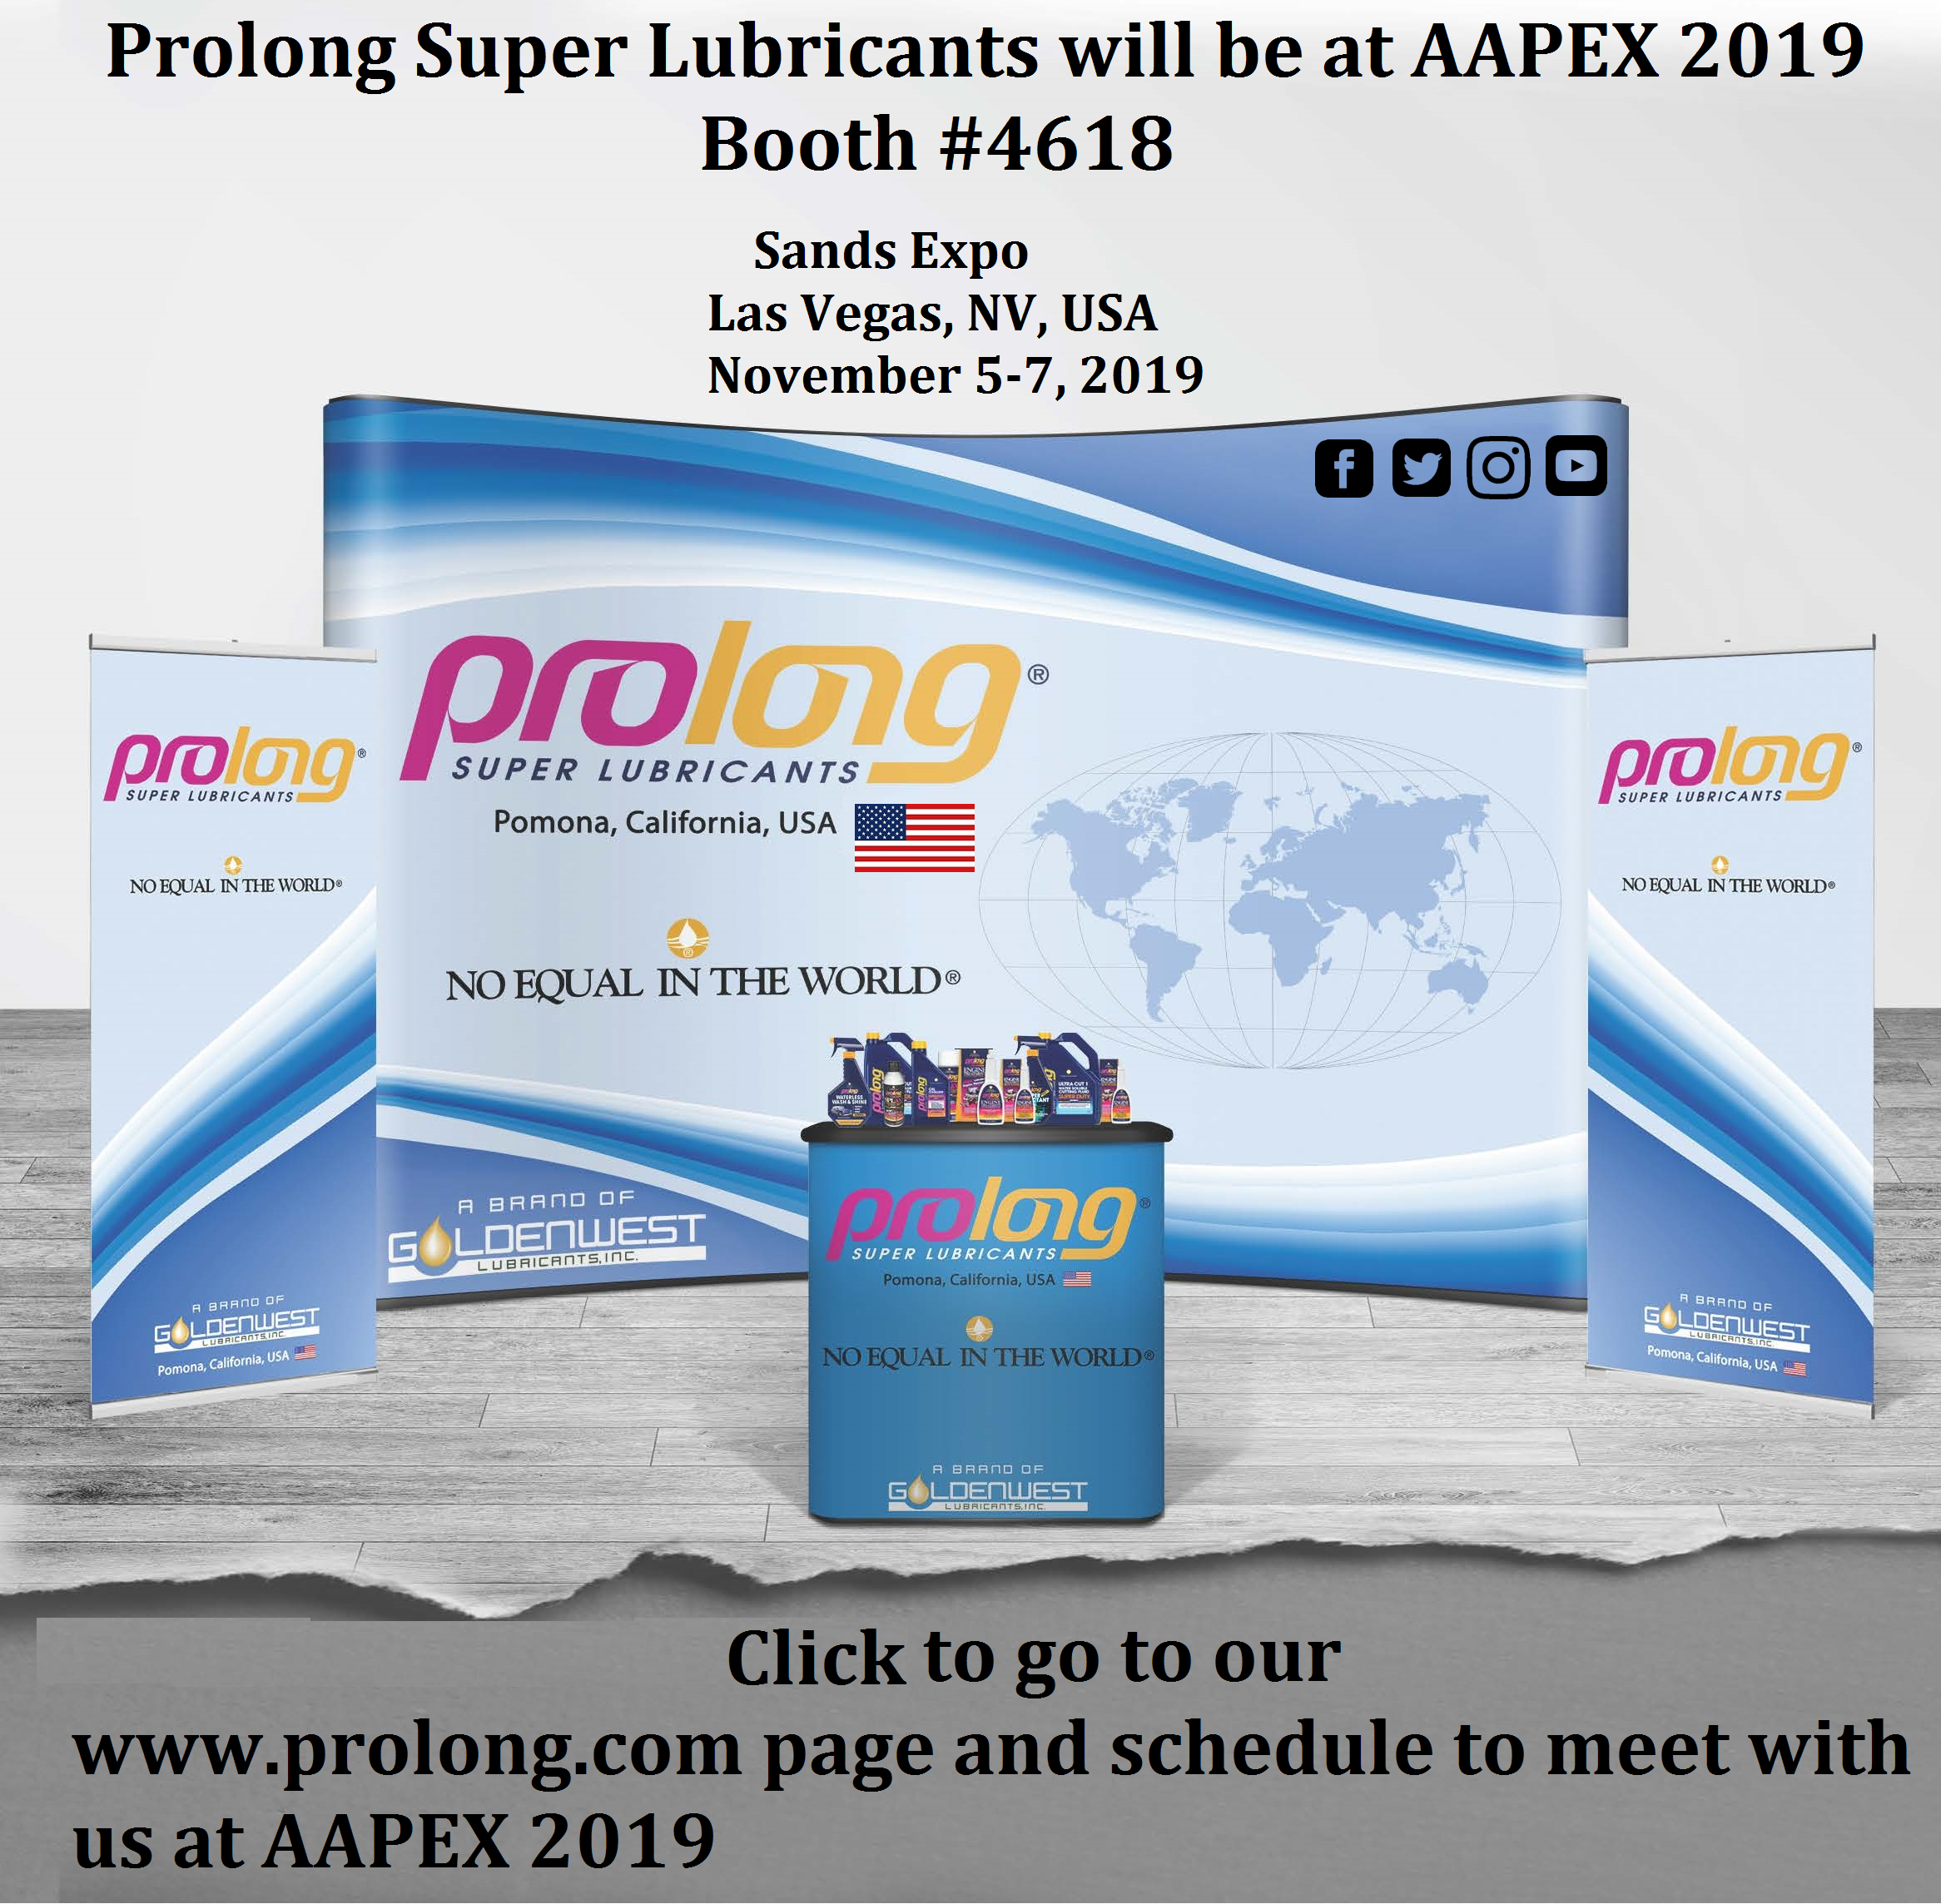 Prolong at AAPEX 2019